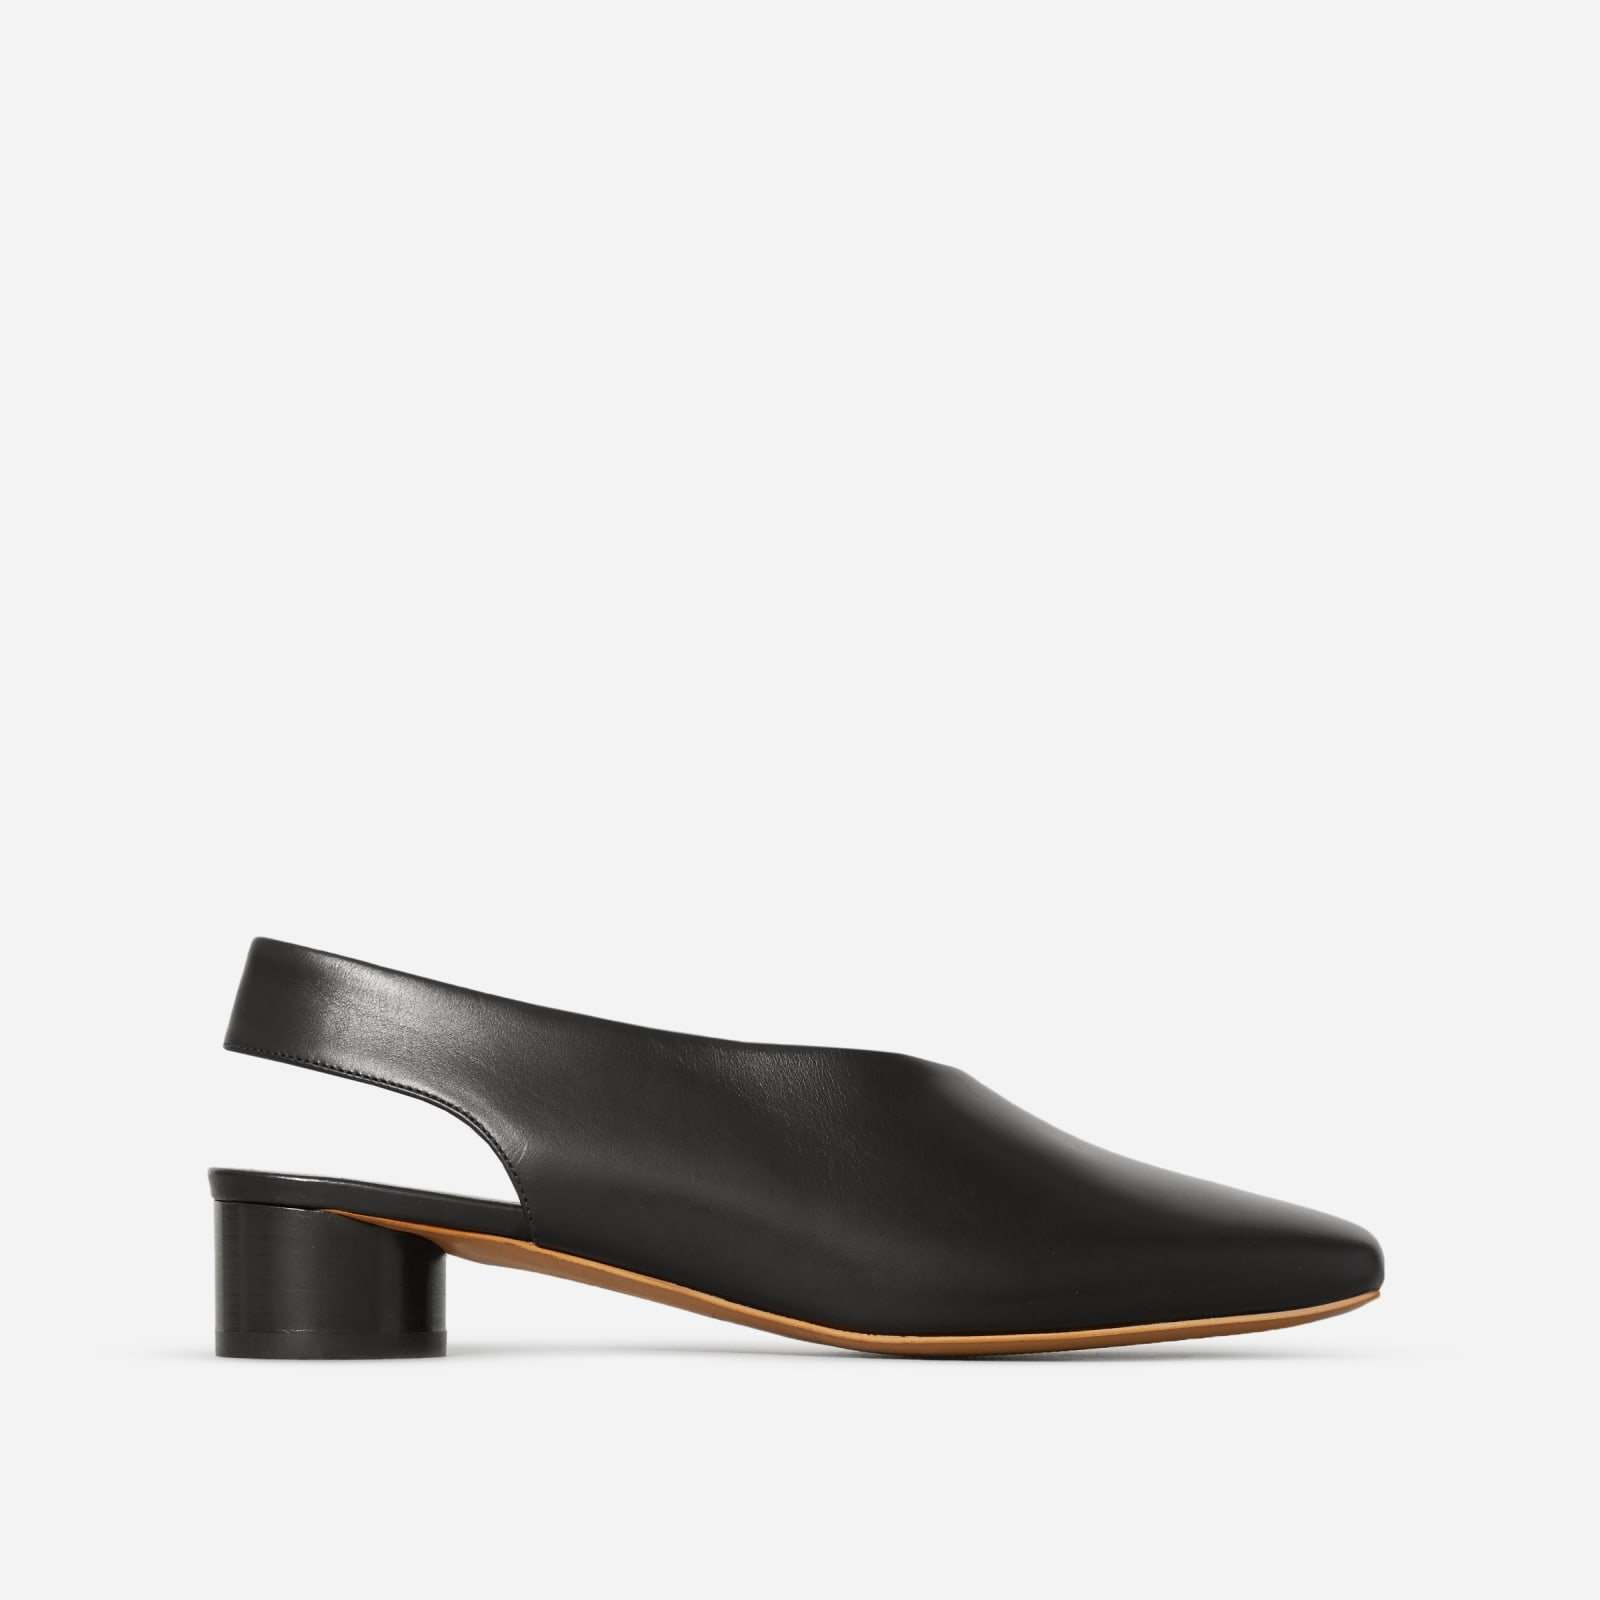 square toe slingback by everlane in black, size 5